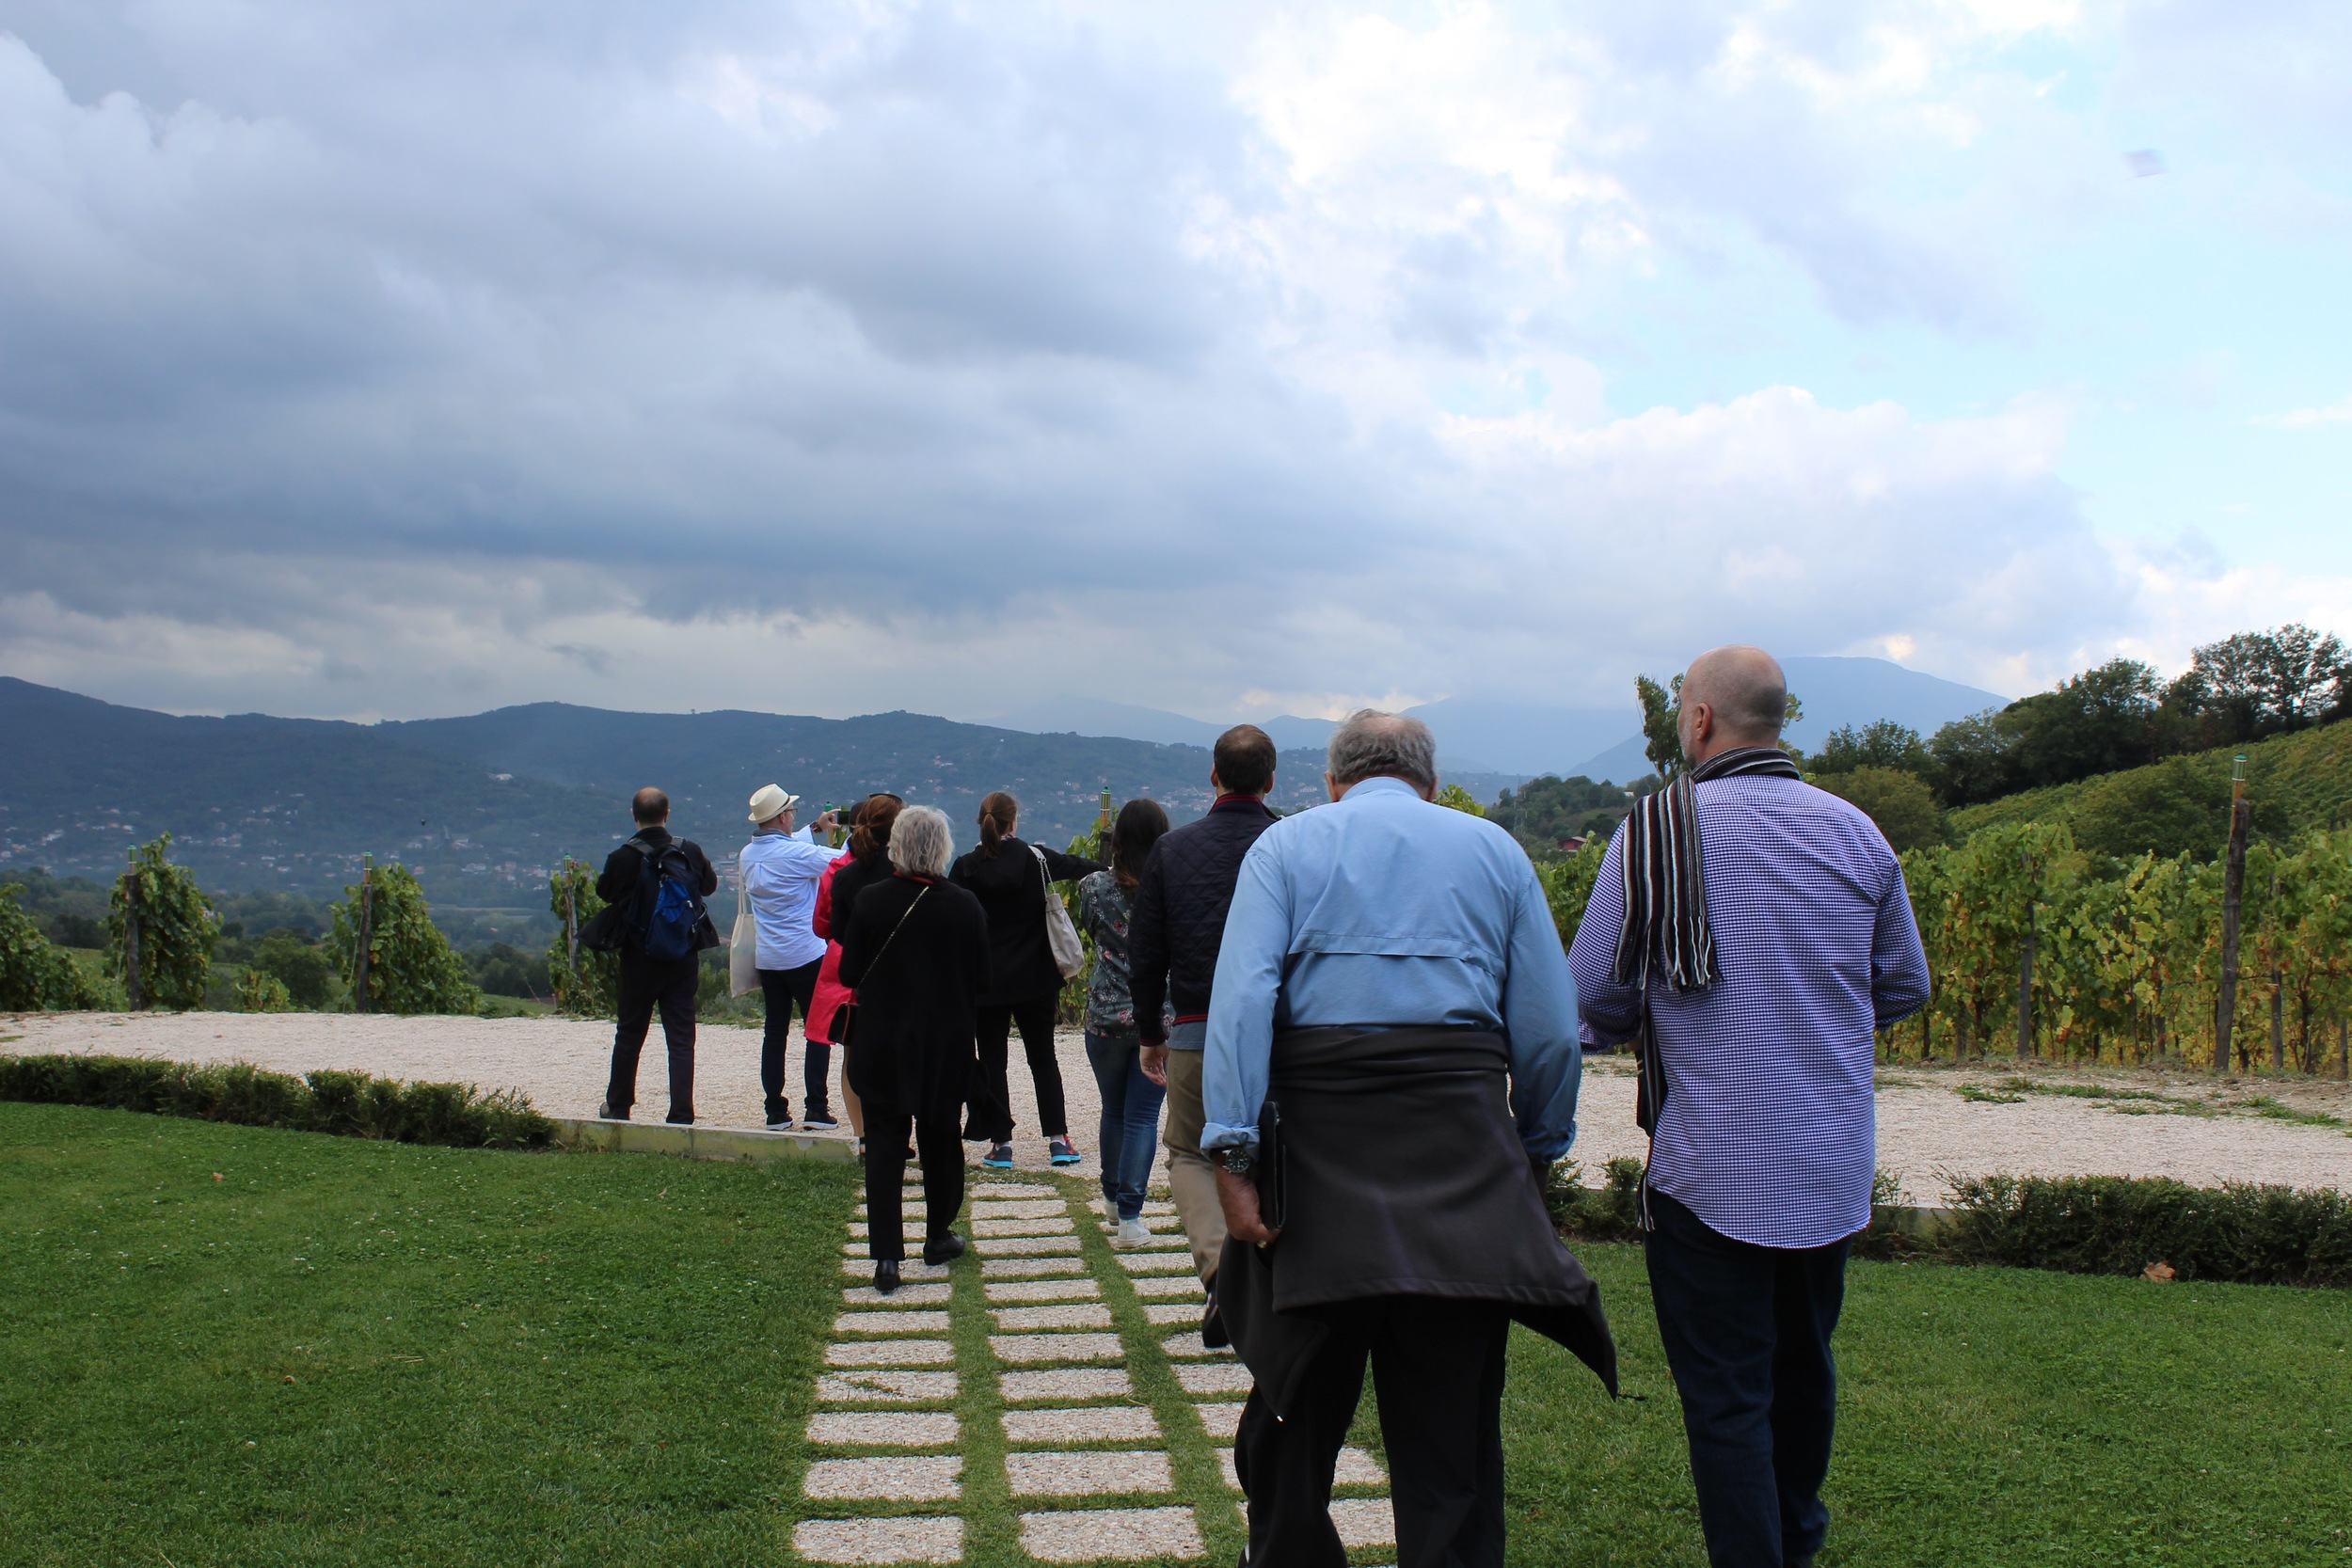 Guests on the October 2015 wine tour walking out to see the Greco di Tufo grapes on the vines.